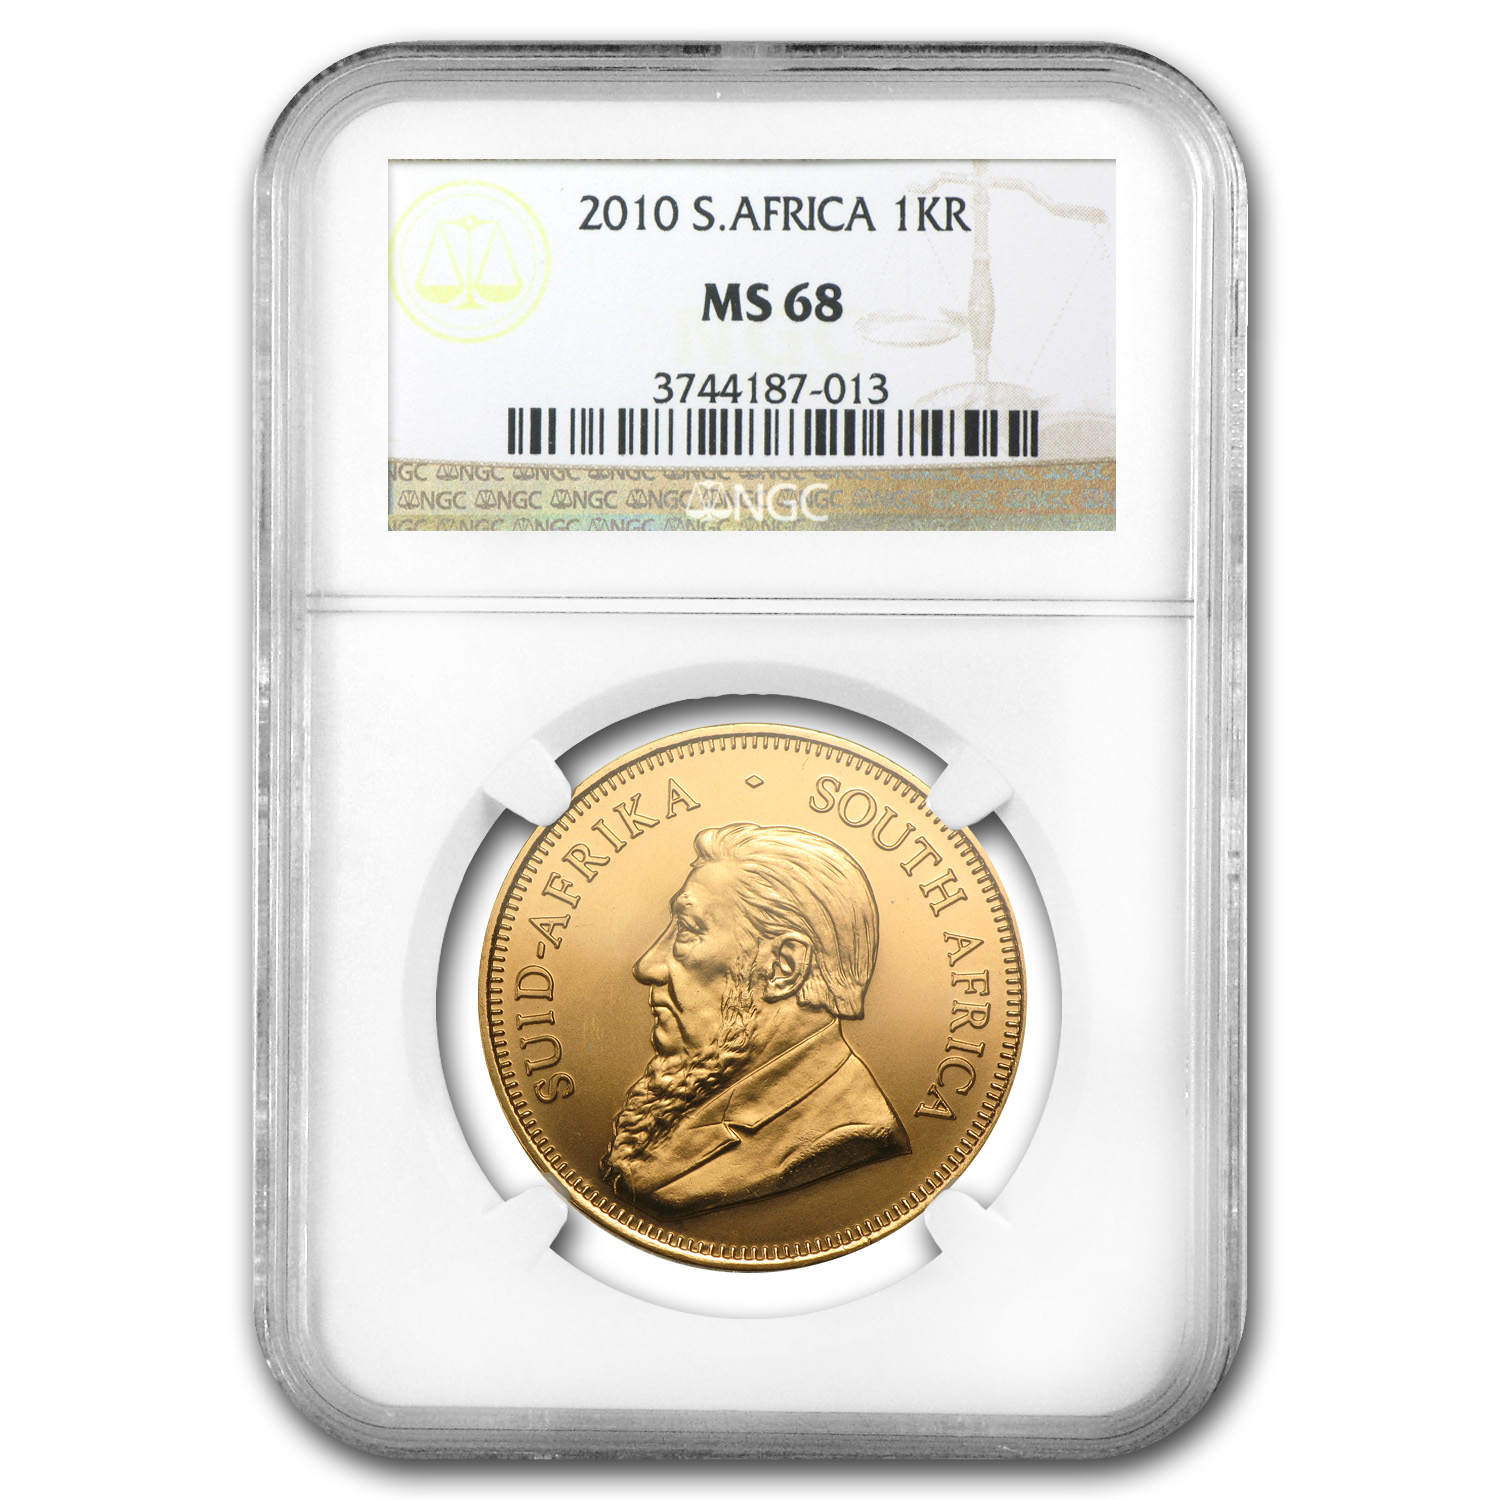 2010 South Africa 1 oz Gold Krugerrand MS-68 NGC